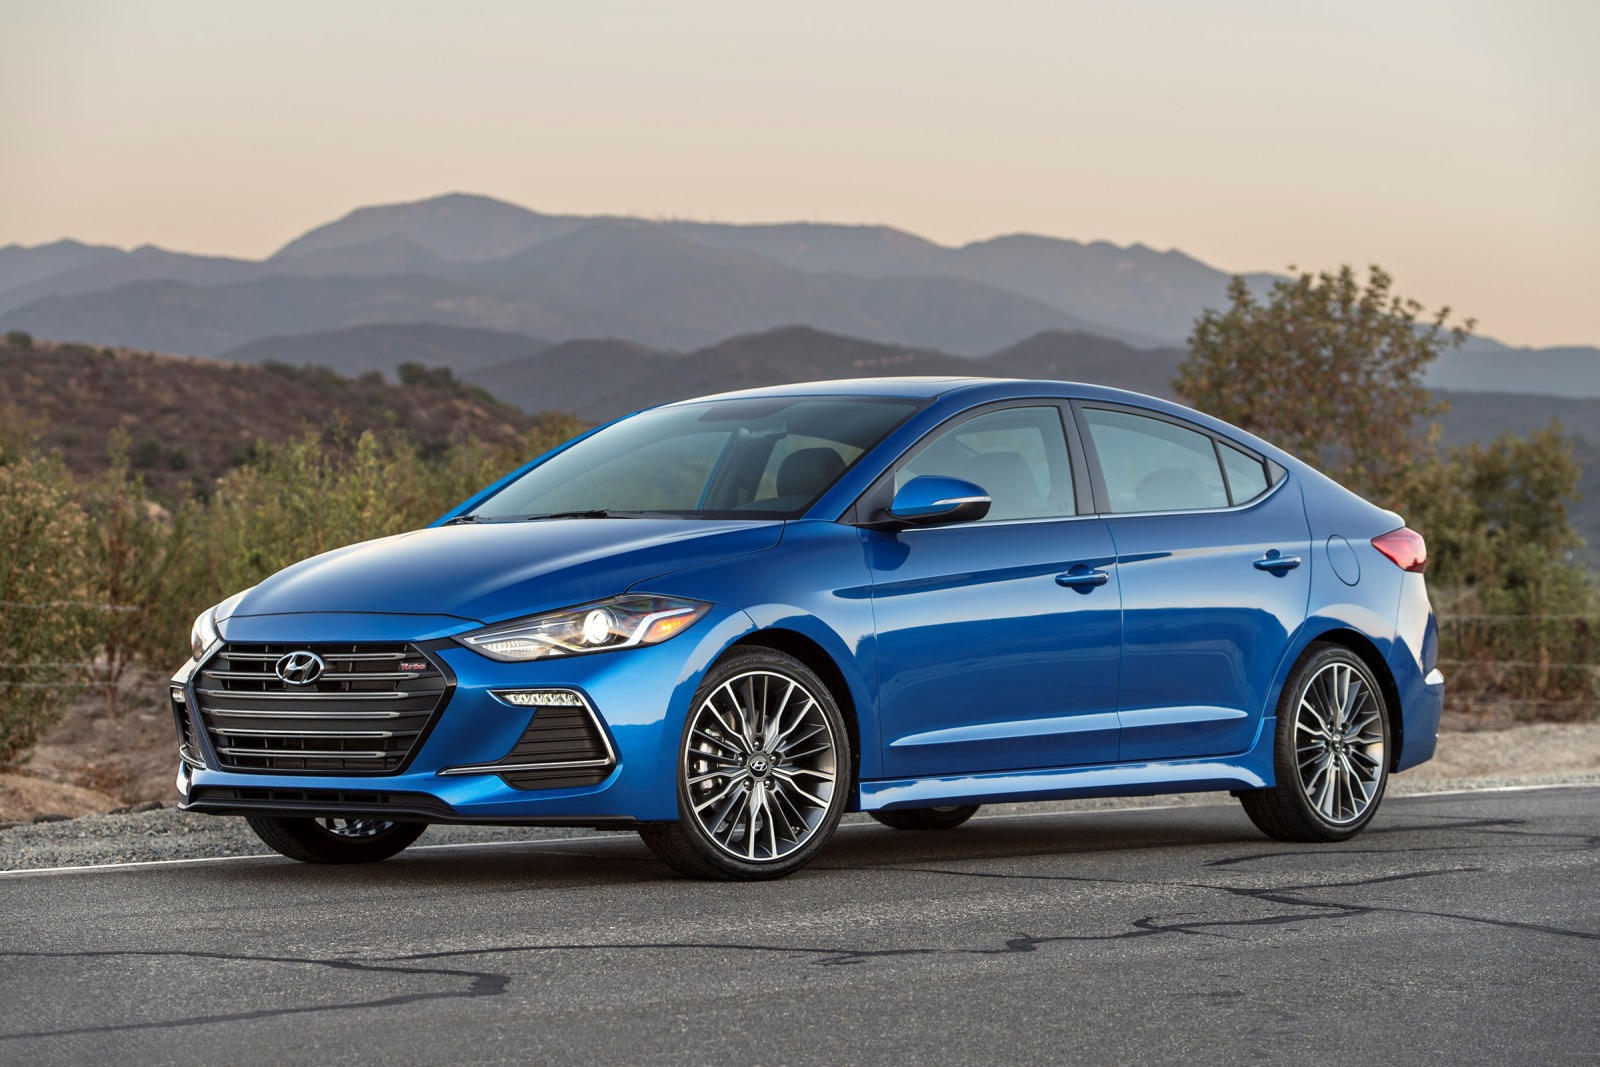 2017 Hyundai Elantra will surprise with its 200-strong Sport modification 62